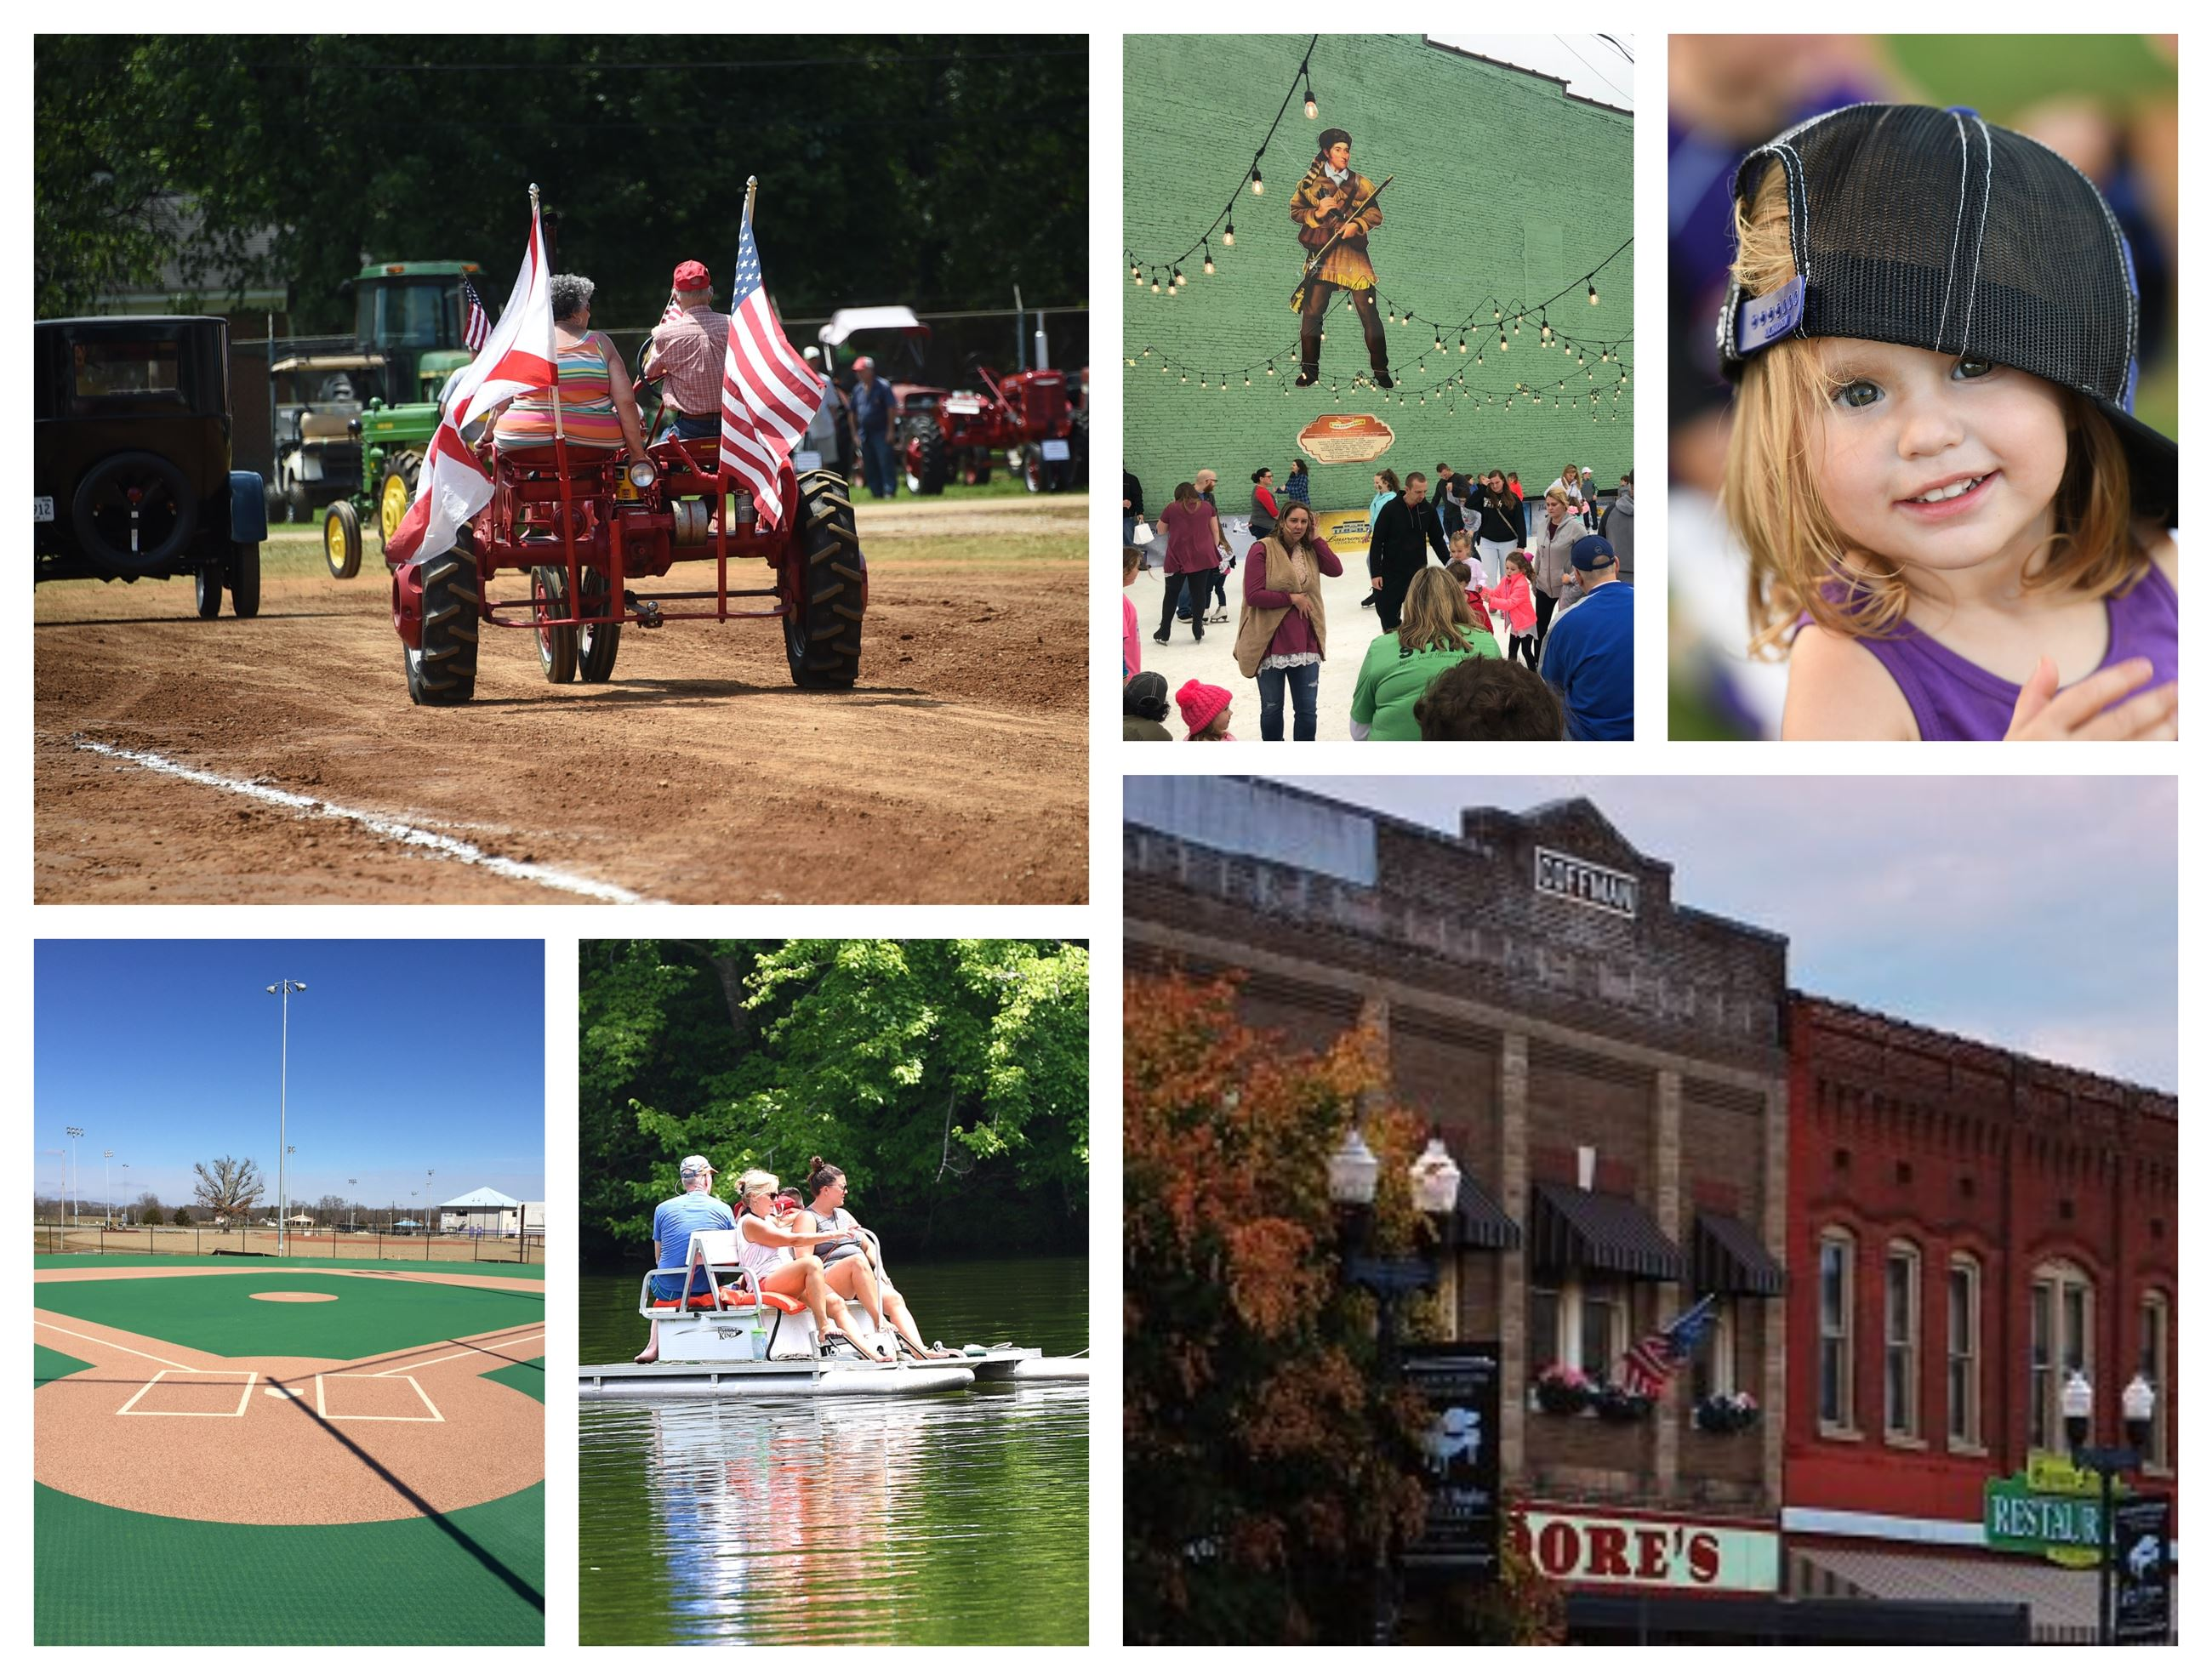 Collage of tractor, rink, girl, lil league field, lake, and store front